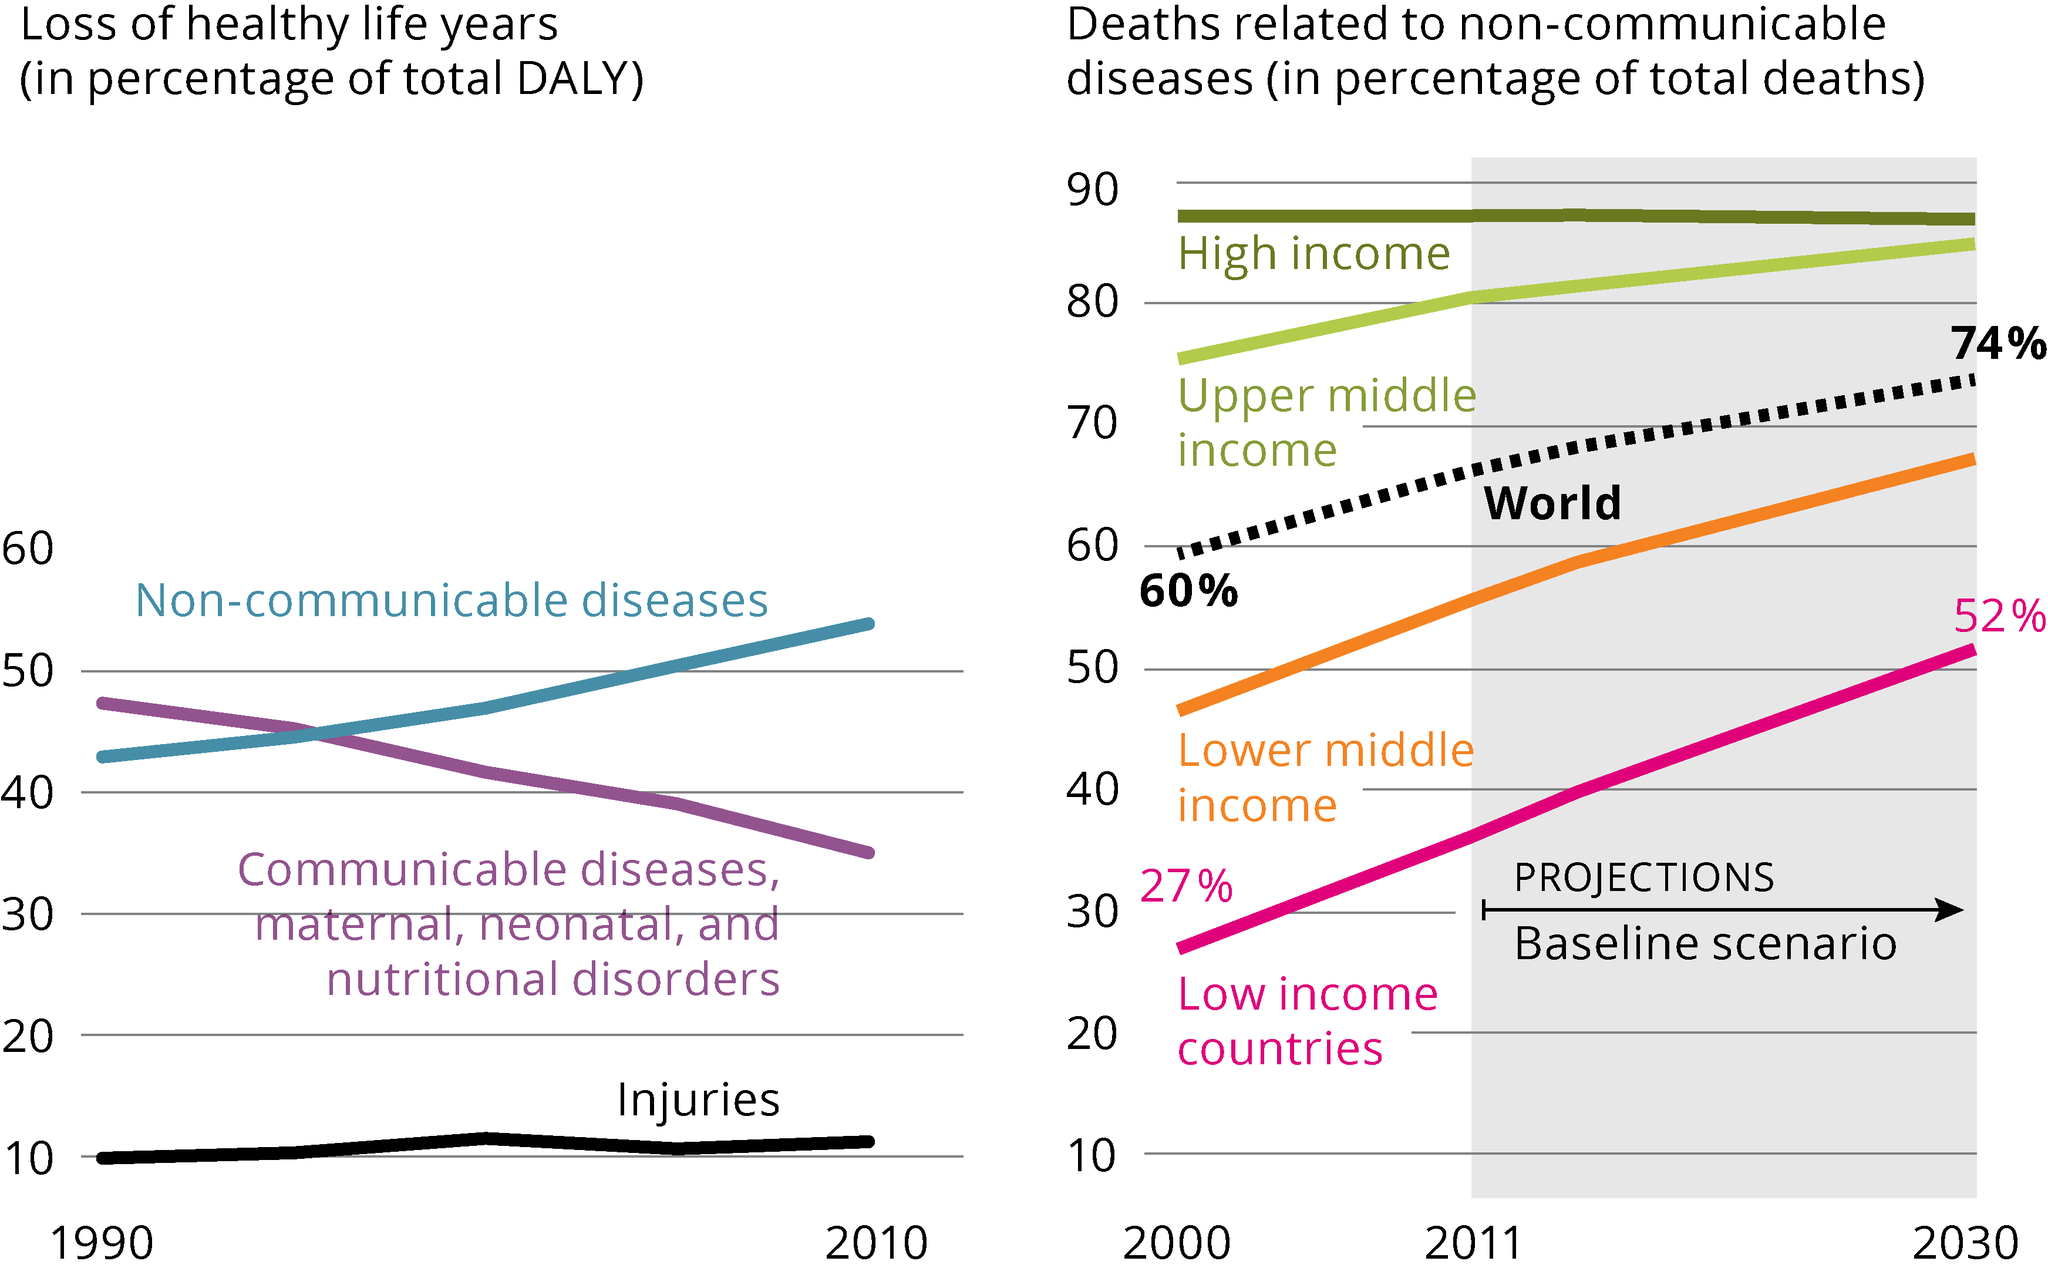 disease trends and delivery of healthcare Access health care reform data,  the experts report and comment on five or more health policy trends and  effective care delivery, chronic disease and .